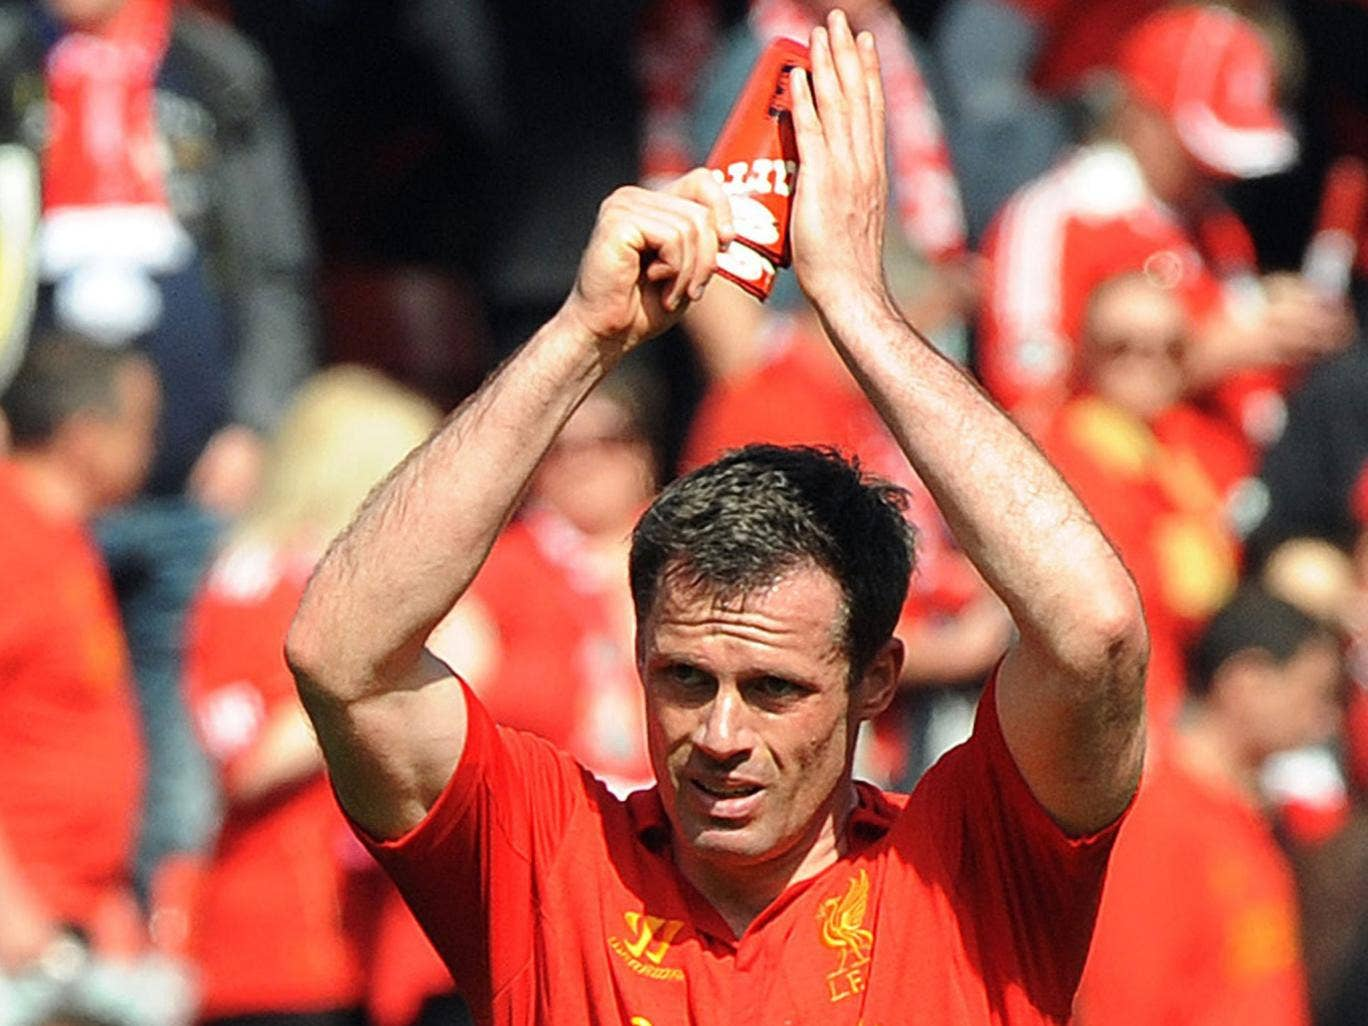 Liverpool's Jamie Carragher applauds at the end of the English Premier League match between Liverpool and Everton at Anfield